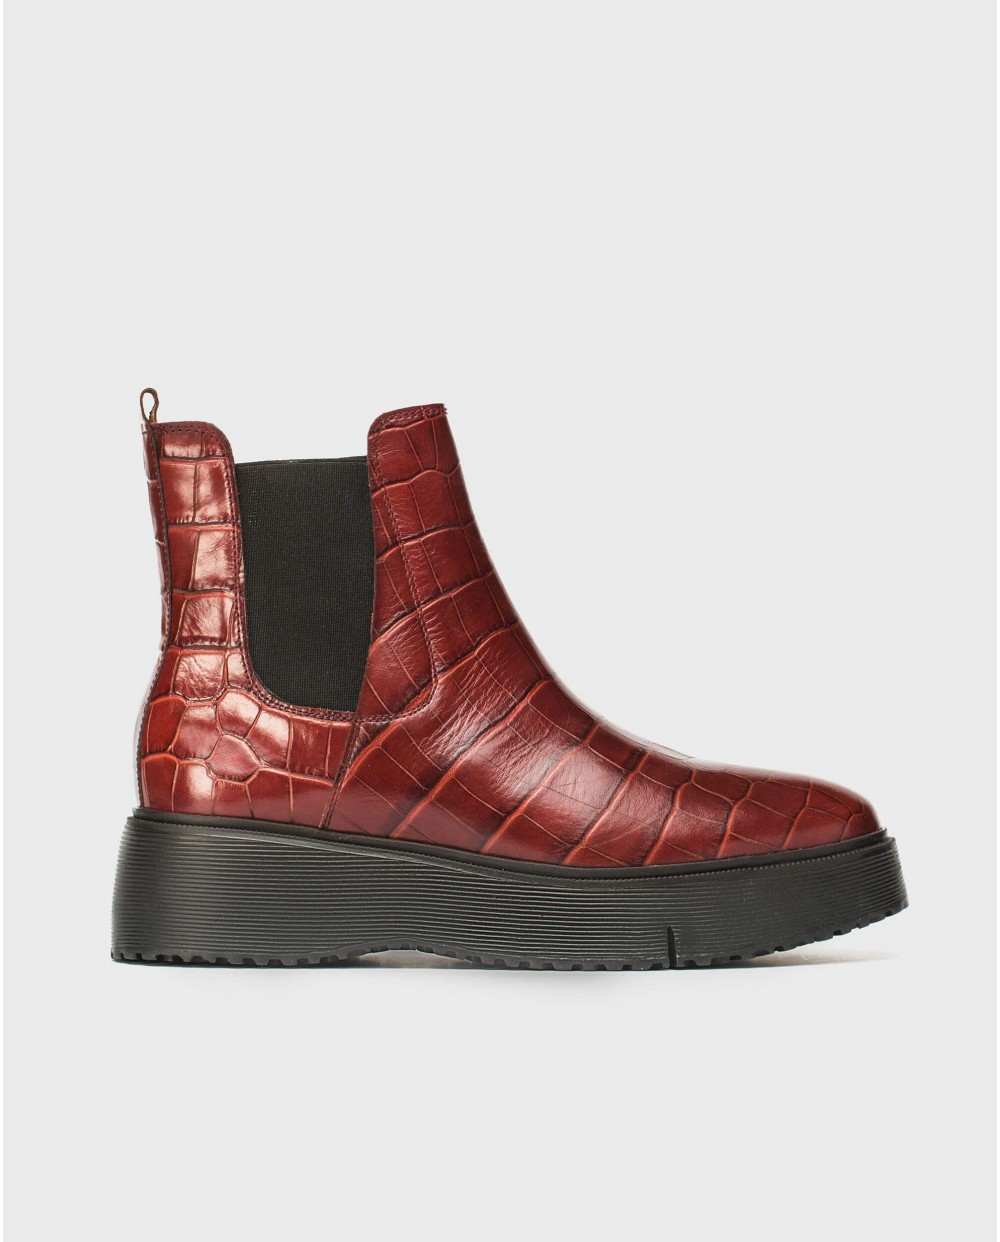 Wonders-Ankle Boots-Ankle boot with elastic